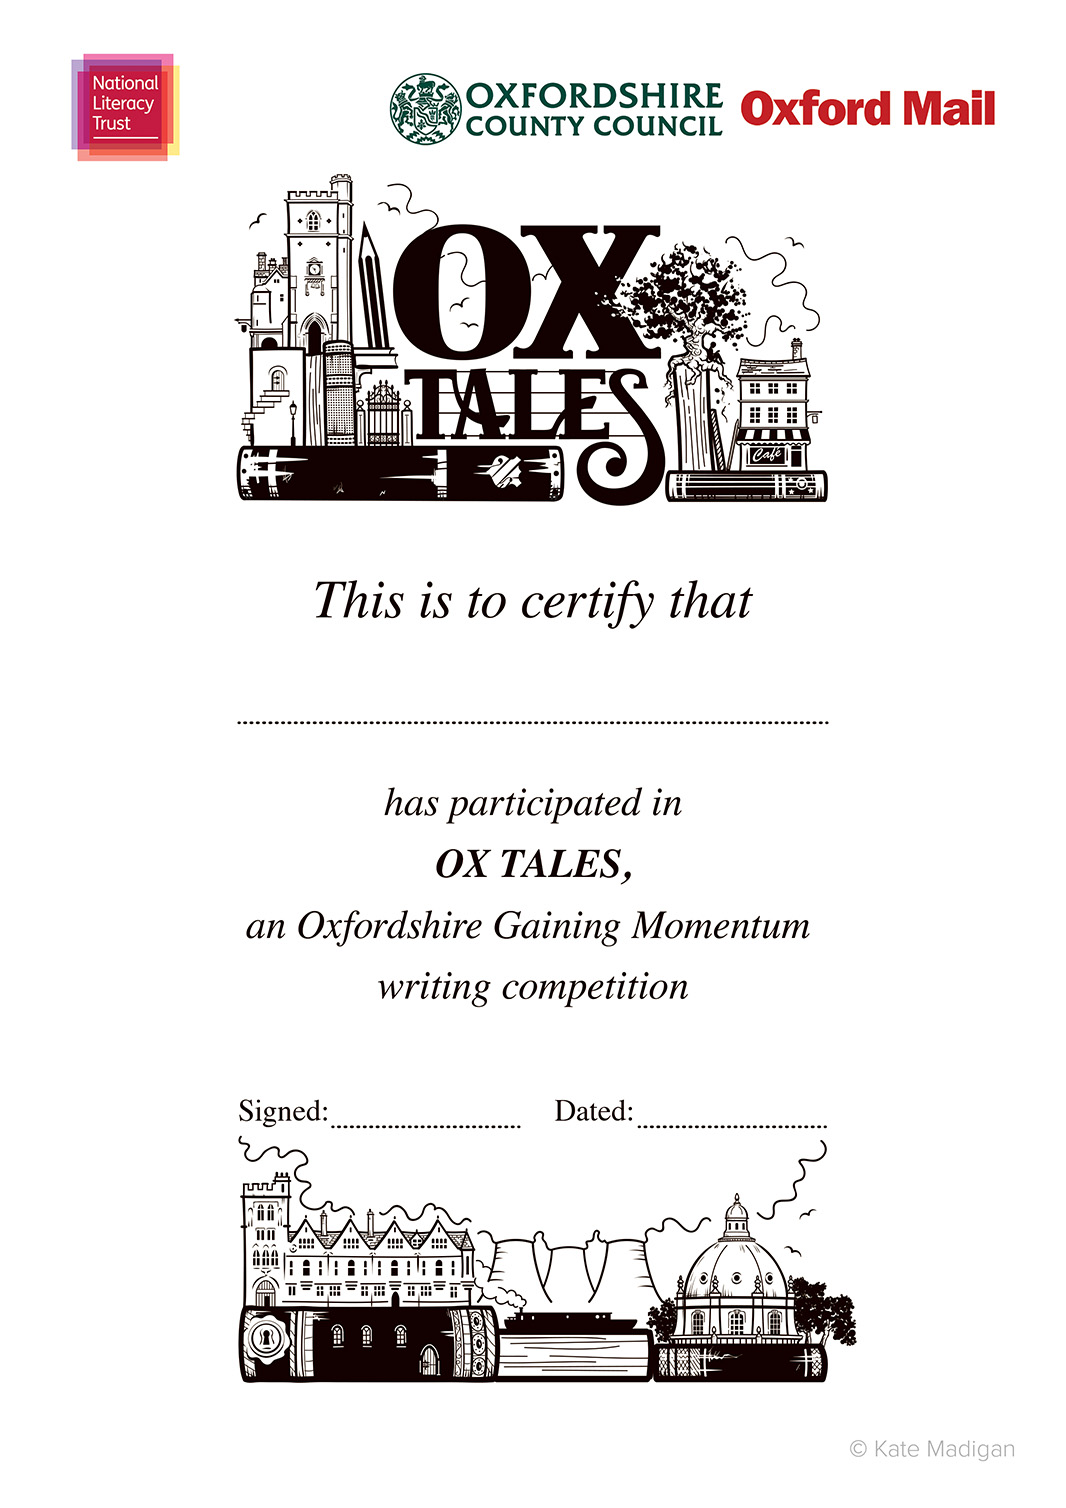 Participants' certificate design for the National Literacy Trust, featuring Oxfordshire landmarks (Carfax Tower, cafes, Brasenose College, Didcot Power Station, the Radcliffe Camera, a canal boat  ), books, pens, pencils, a tablet computer or phone  and decorative typography  .Copyright Kate Madigan.